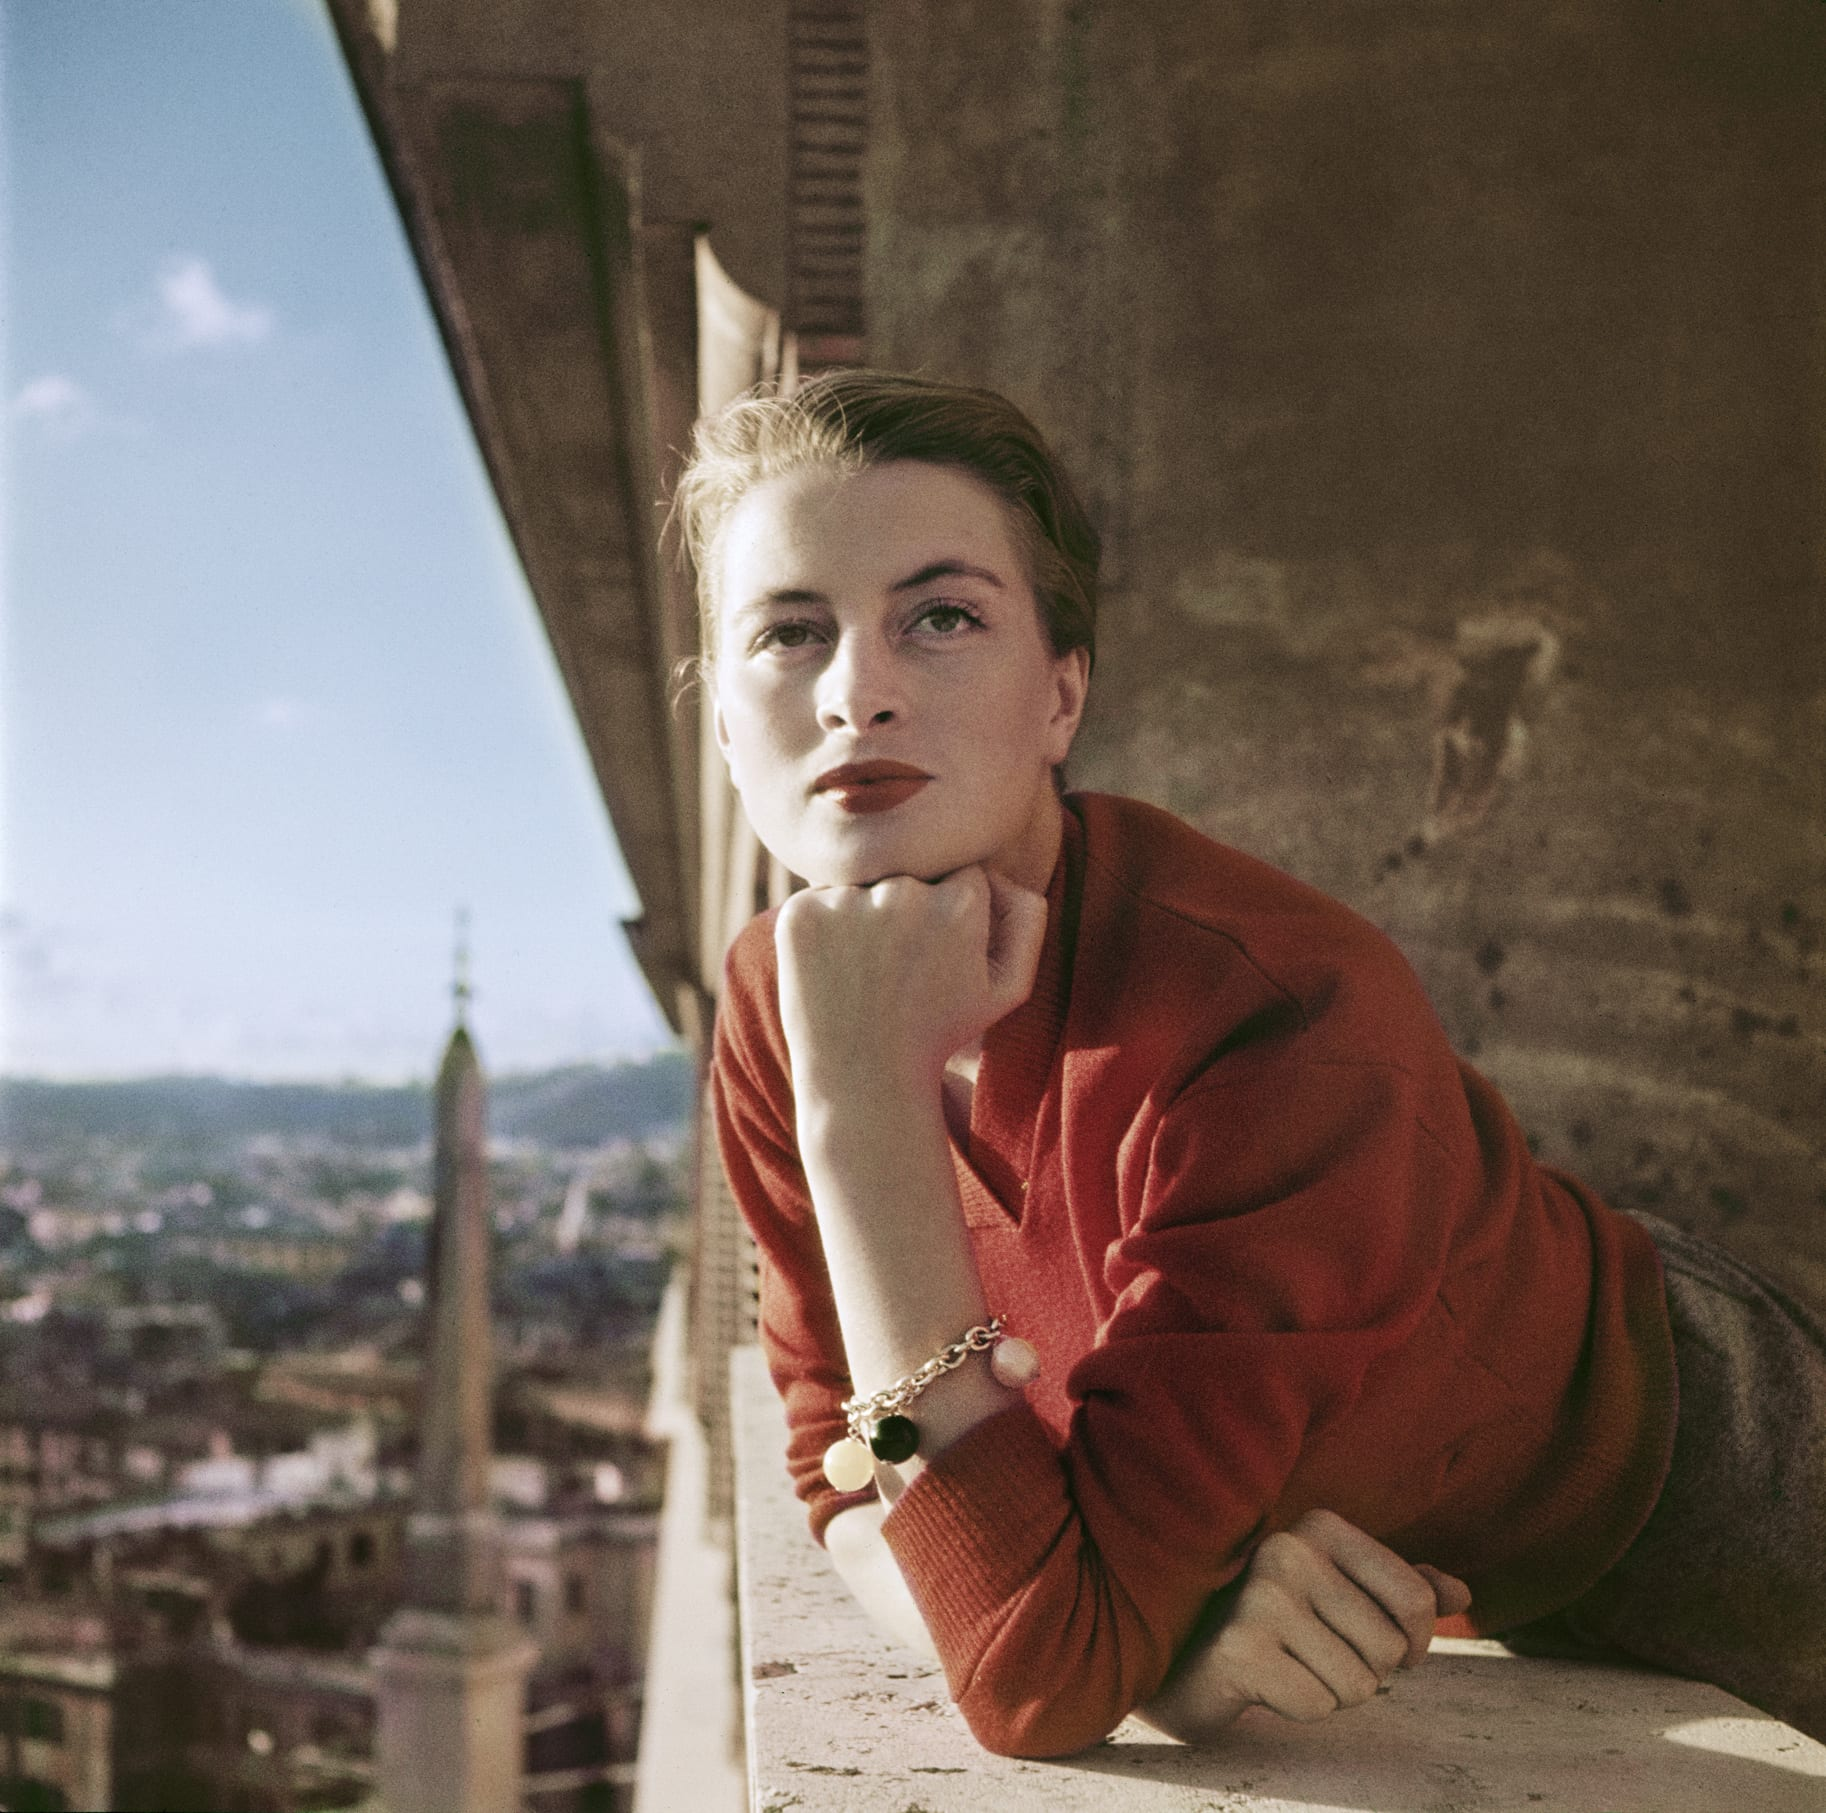 Capucine, French model and actress, on a balcony, Rome, August 1951. ©Robert Capa/International Center of Photography/Magnum Photos.